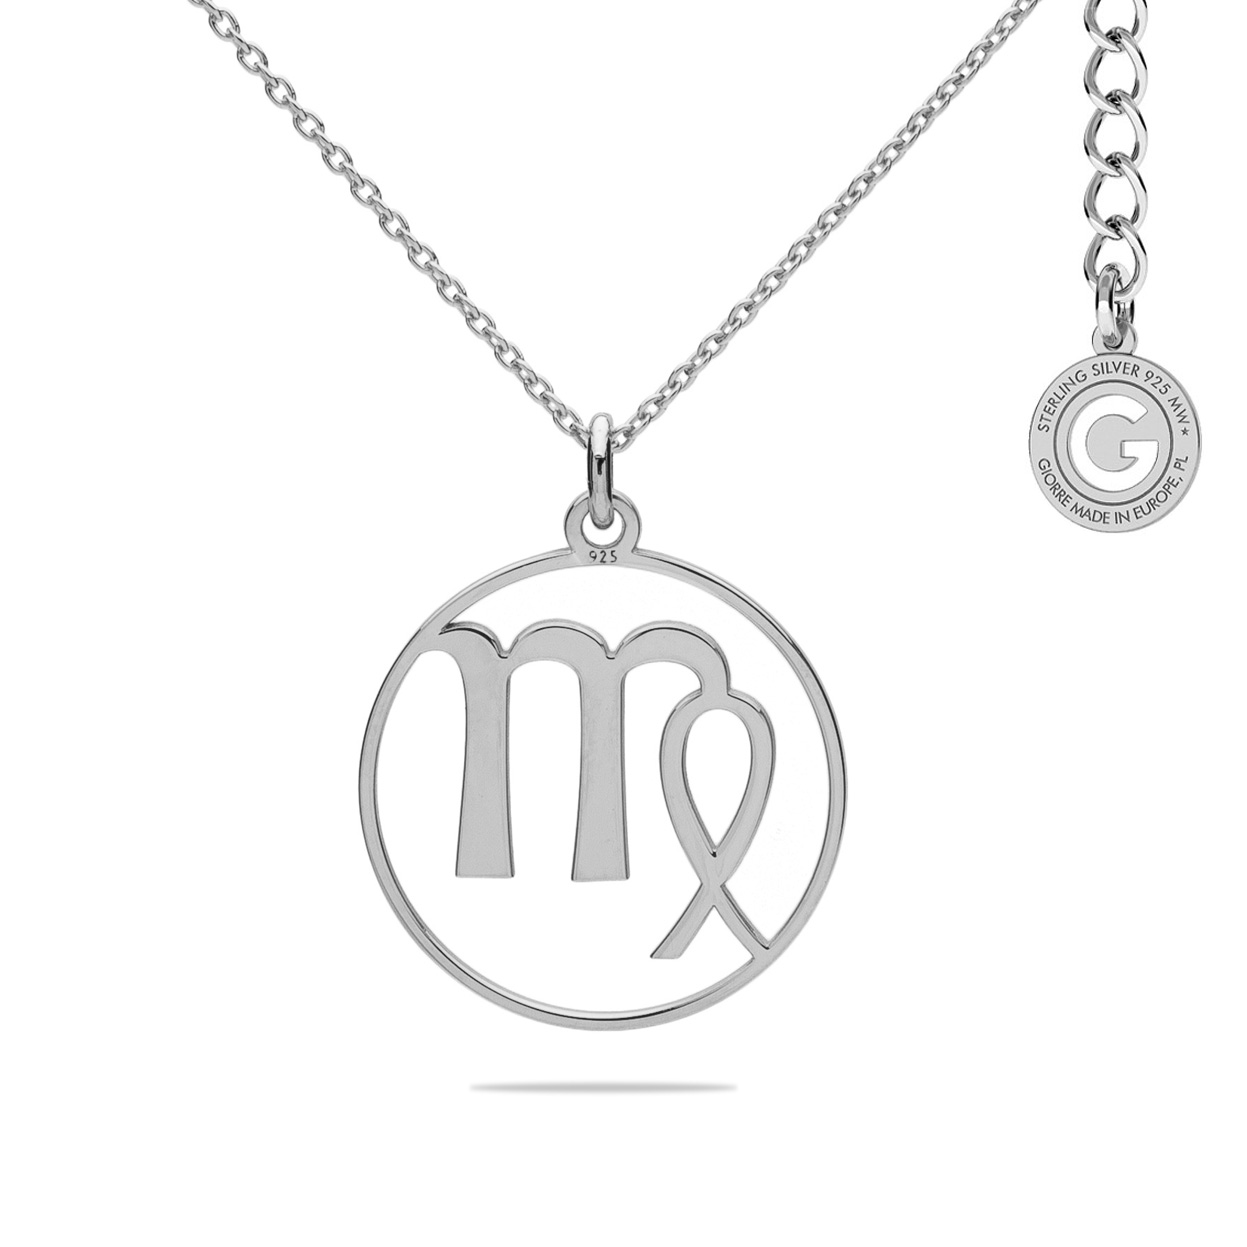 VIRGIN ZODIAC SIGN NECKLACE SILVER 925